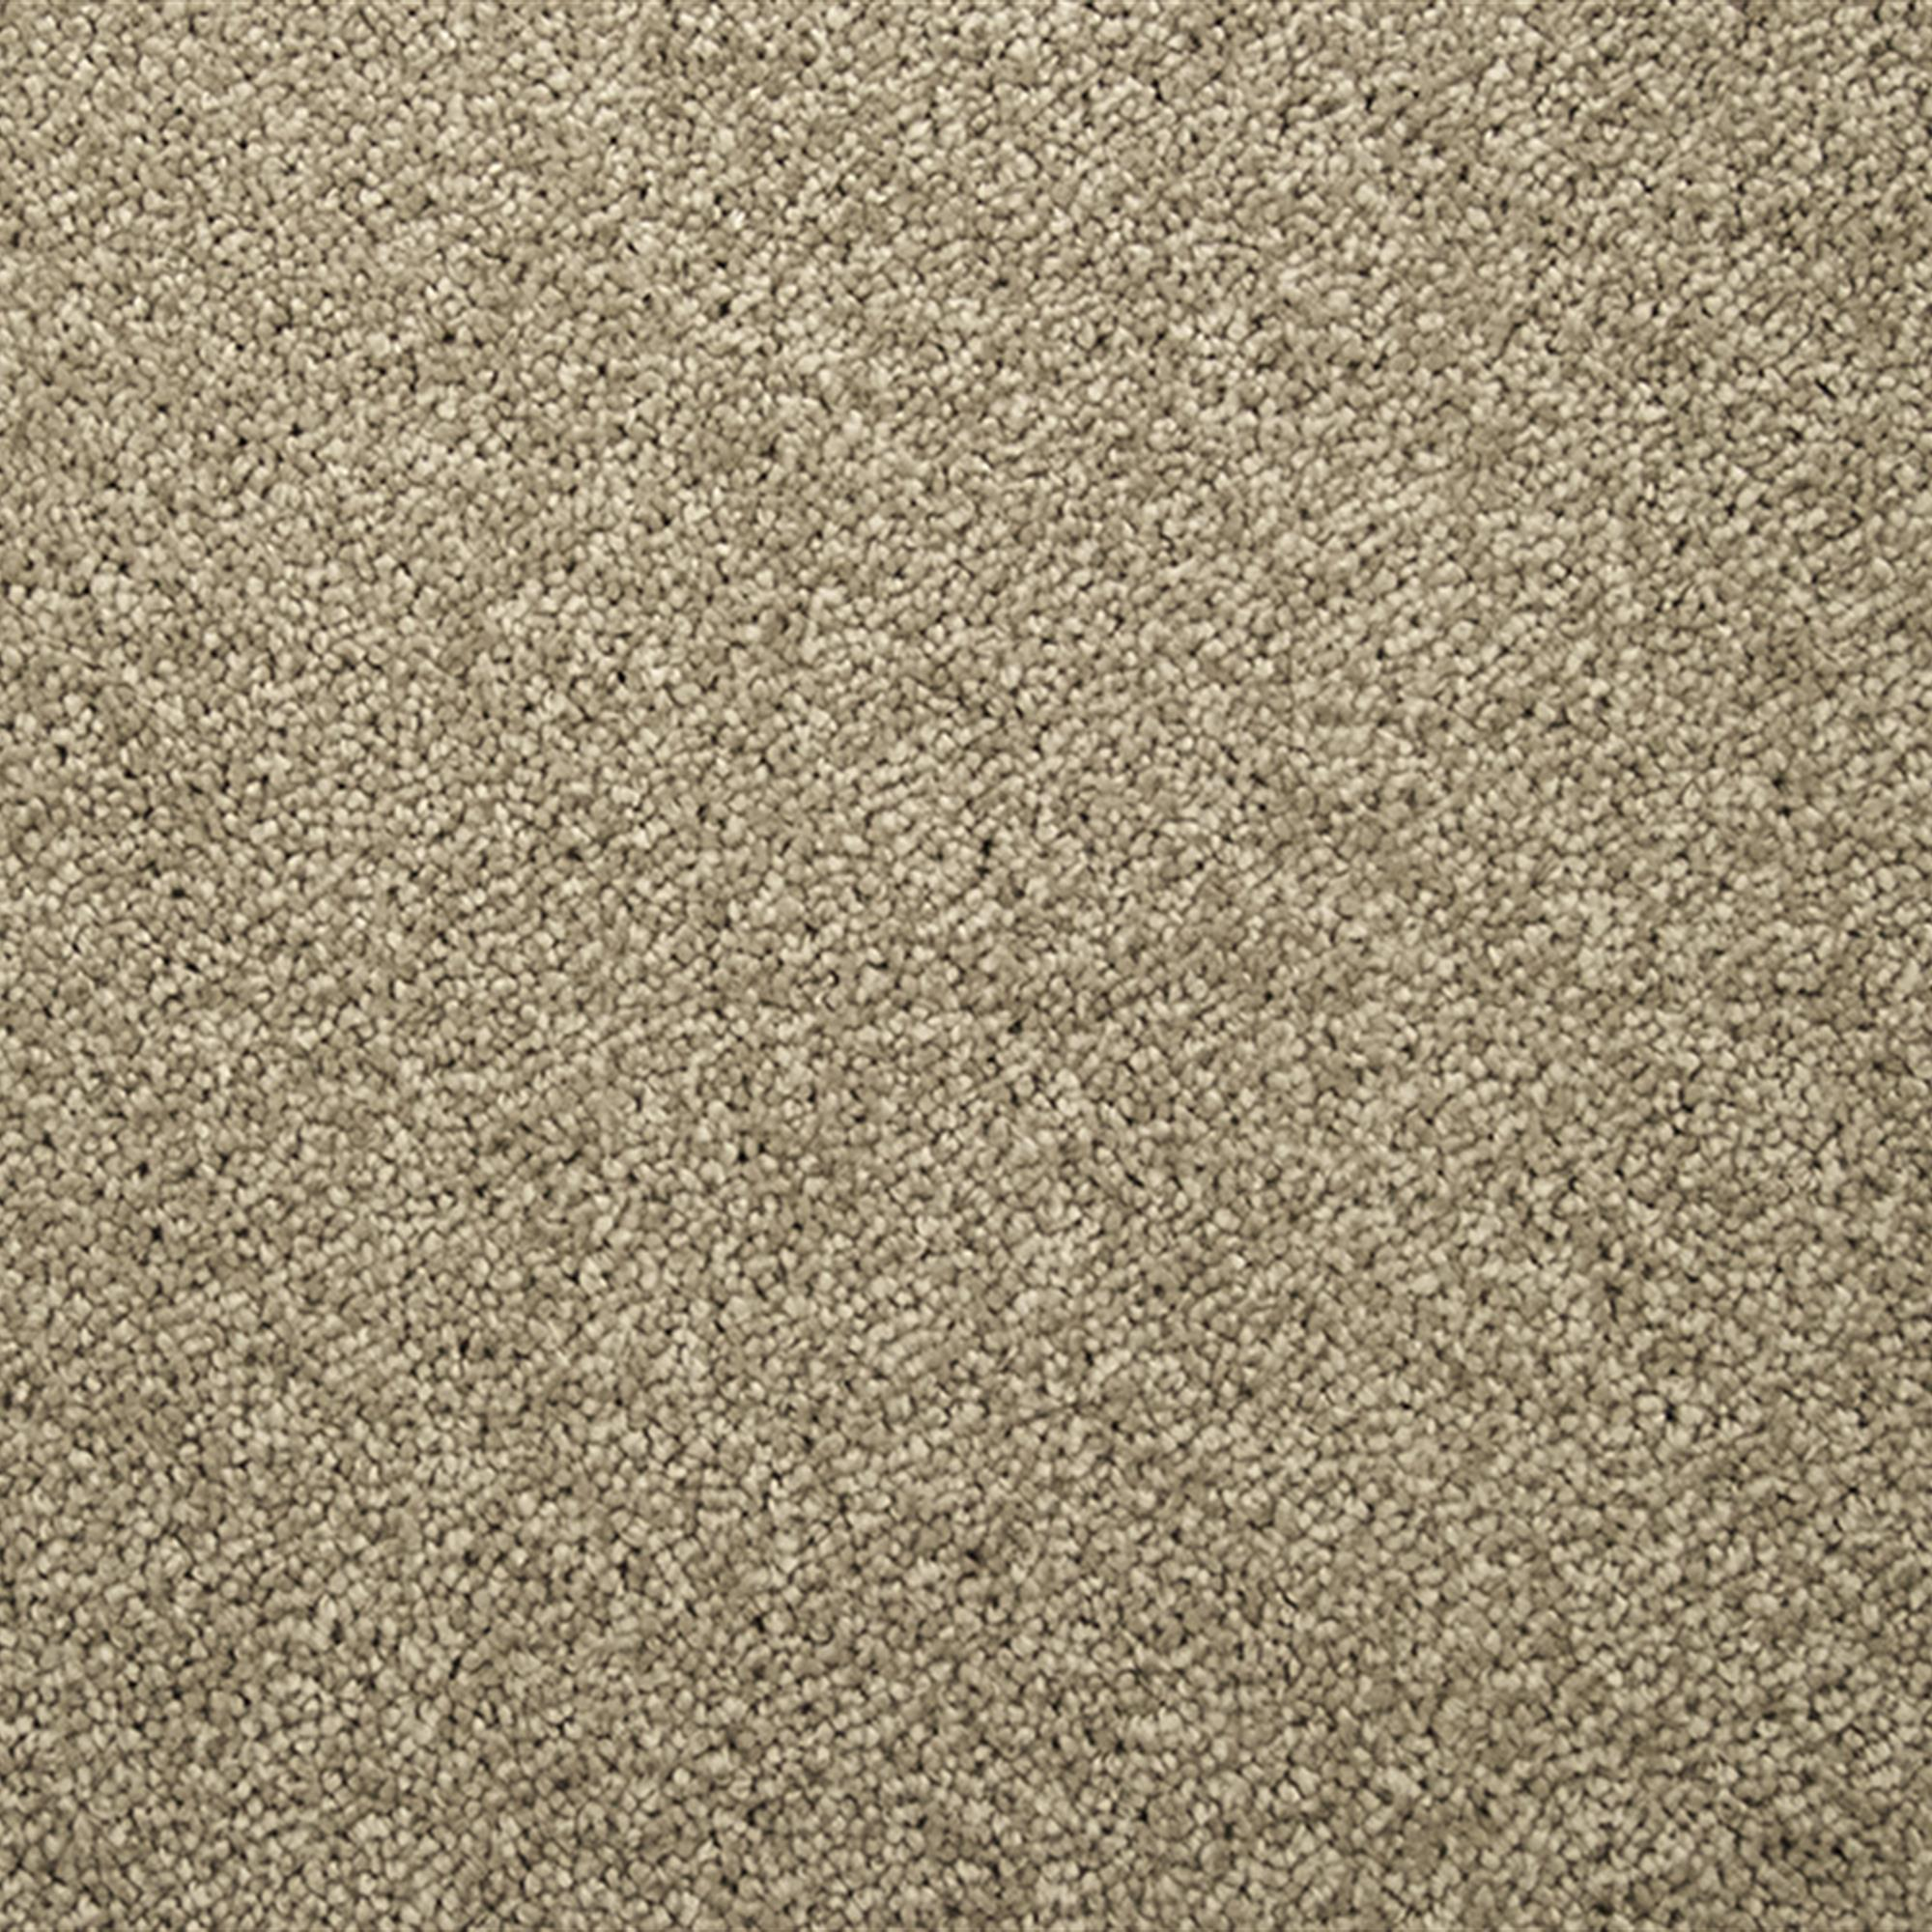 Signature Eloquence Carpet, 941 Flax, swatch